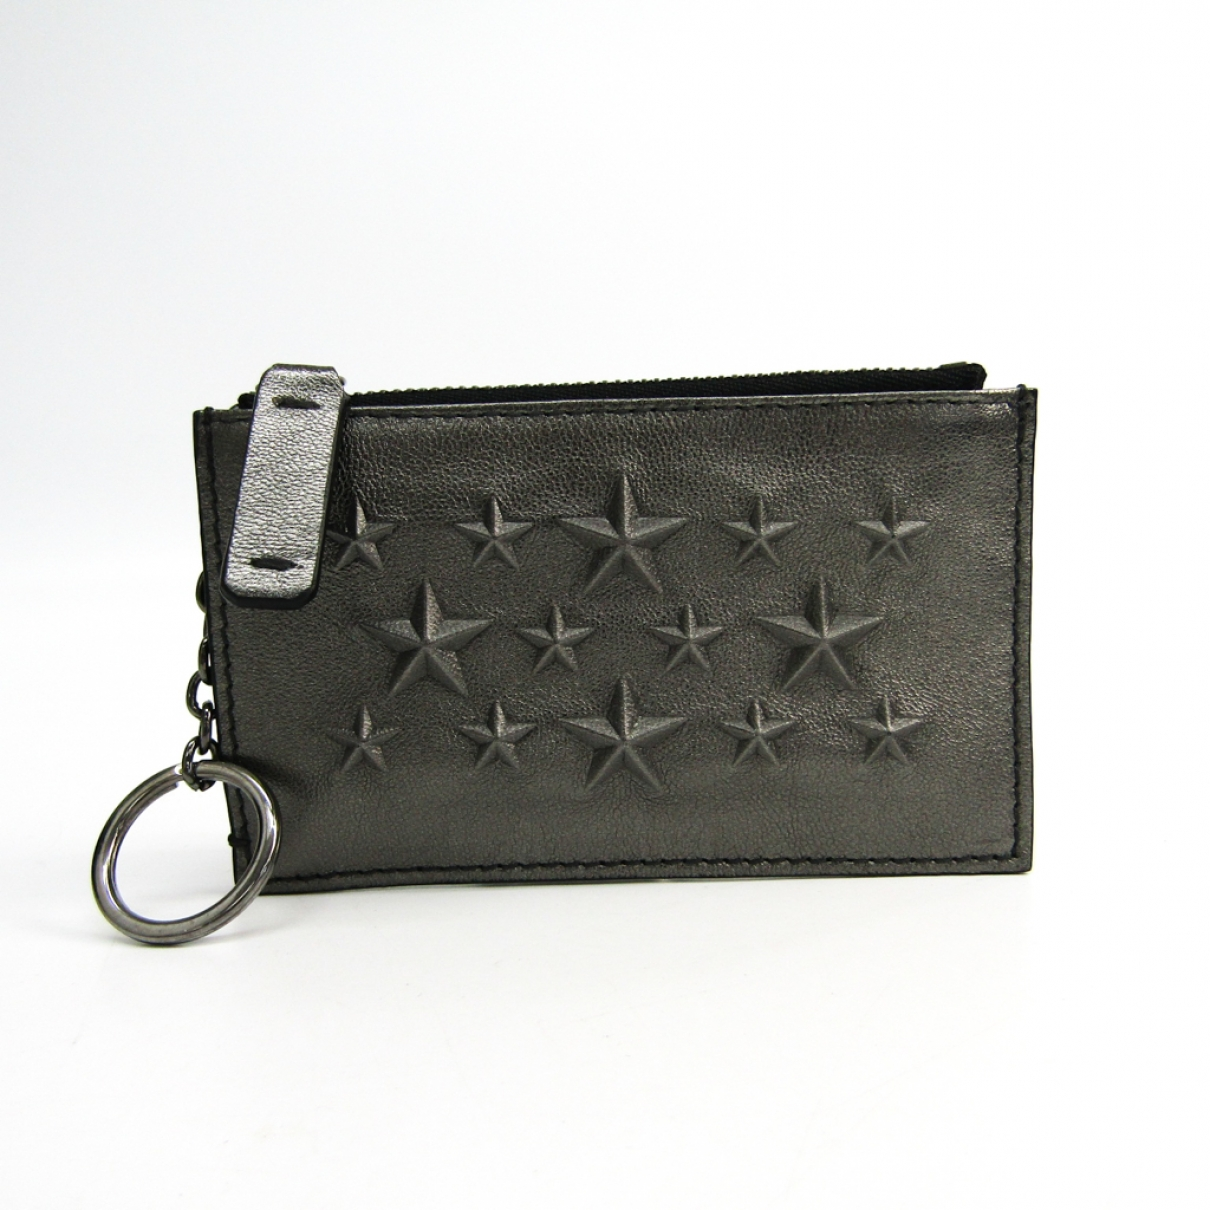 Jimmy Choo \N Anthracite Leather wallet for Women \N